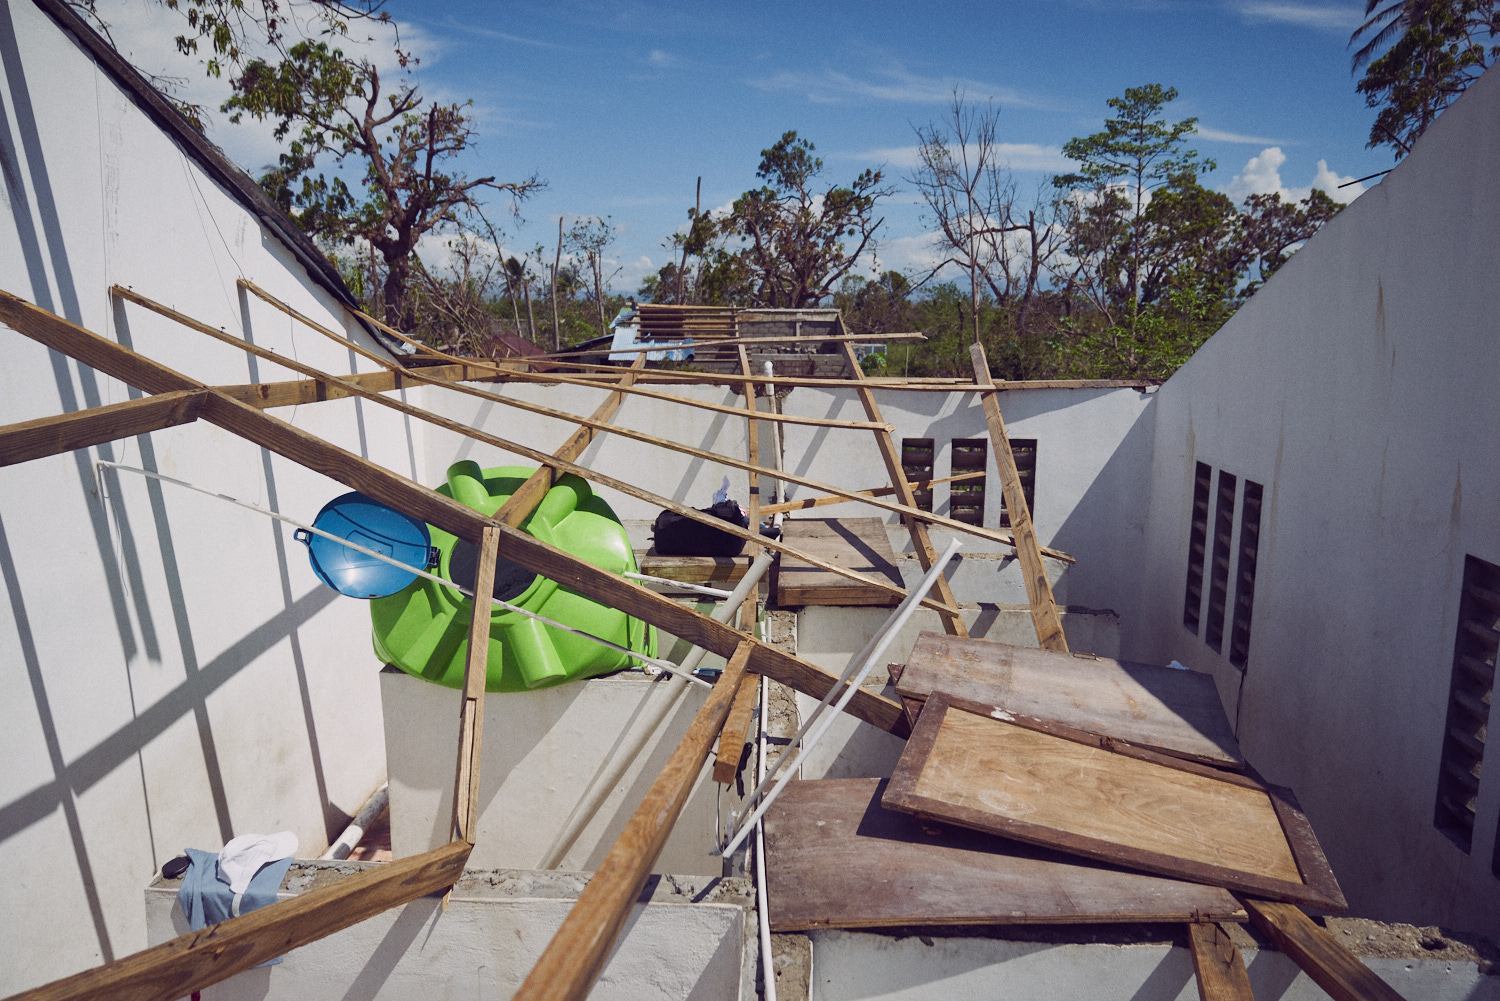 In the aftermath of Hurricane Matthew, an entire section of roof was missing.